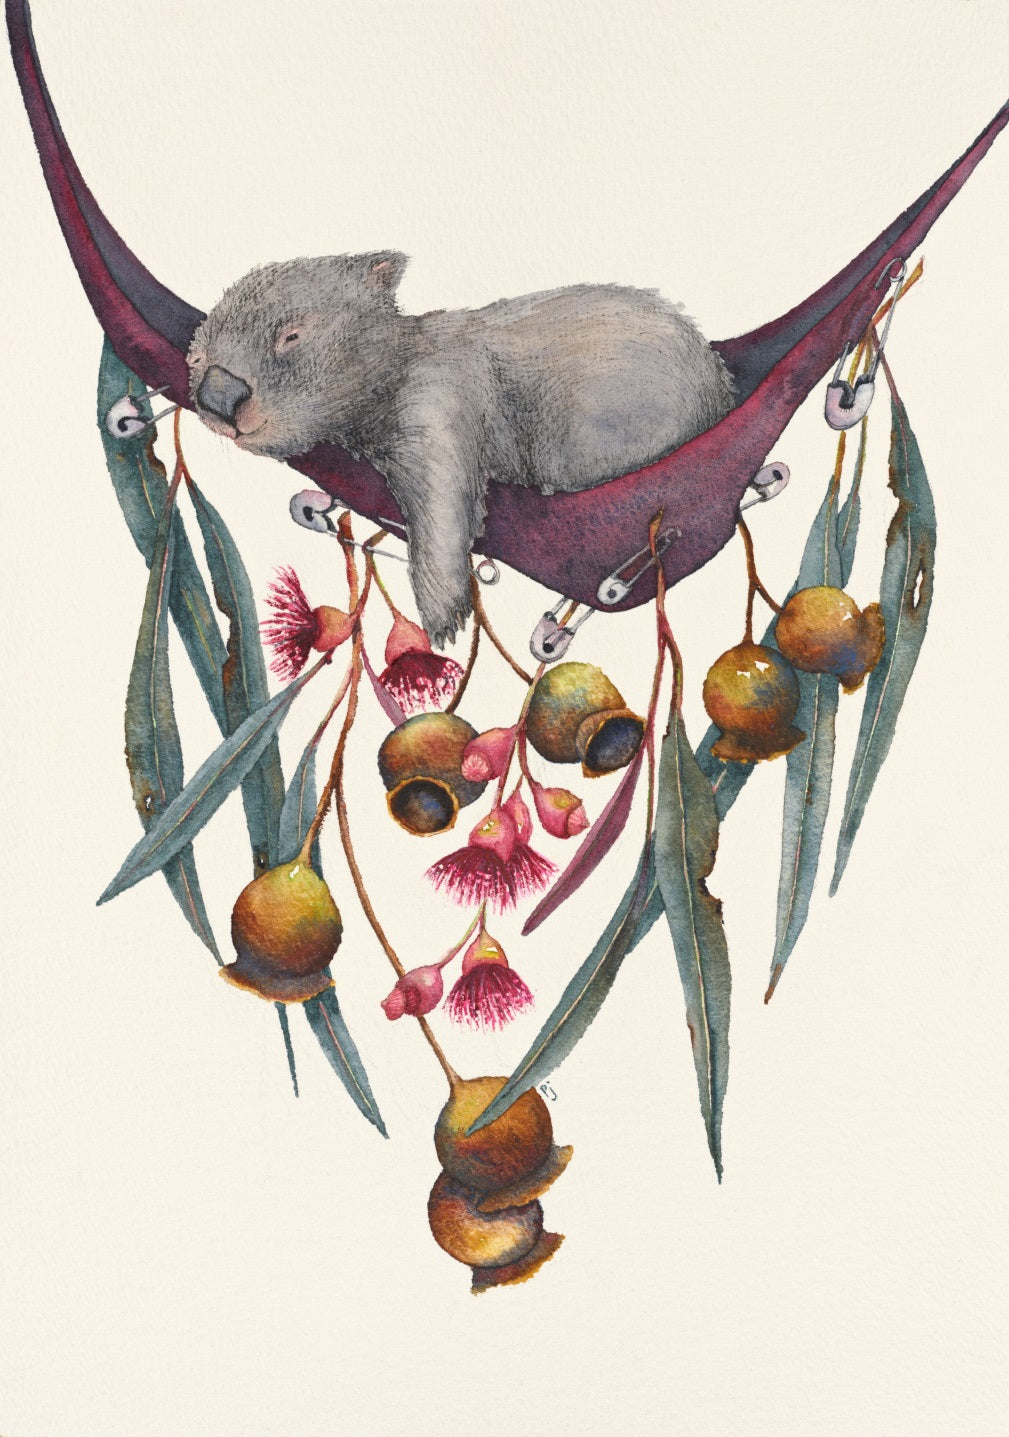 Sleepy Head Series: Wombat: Hanging out